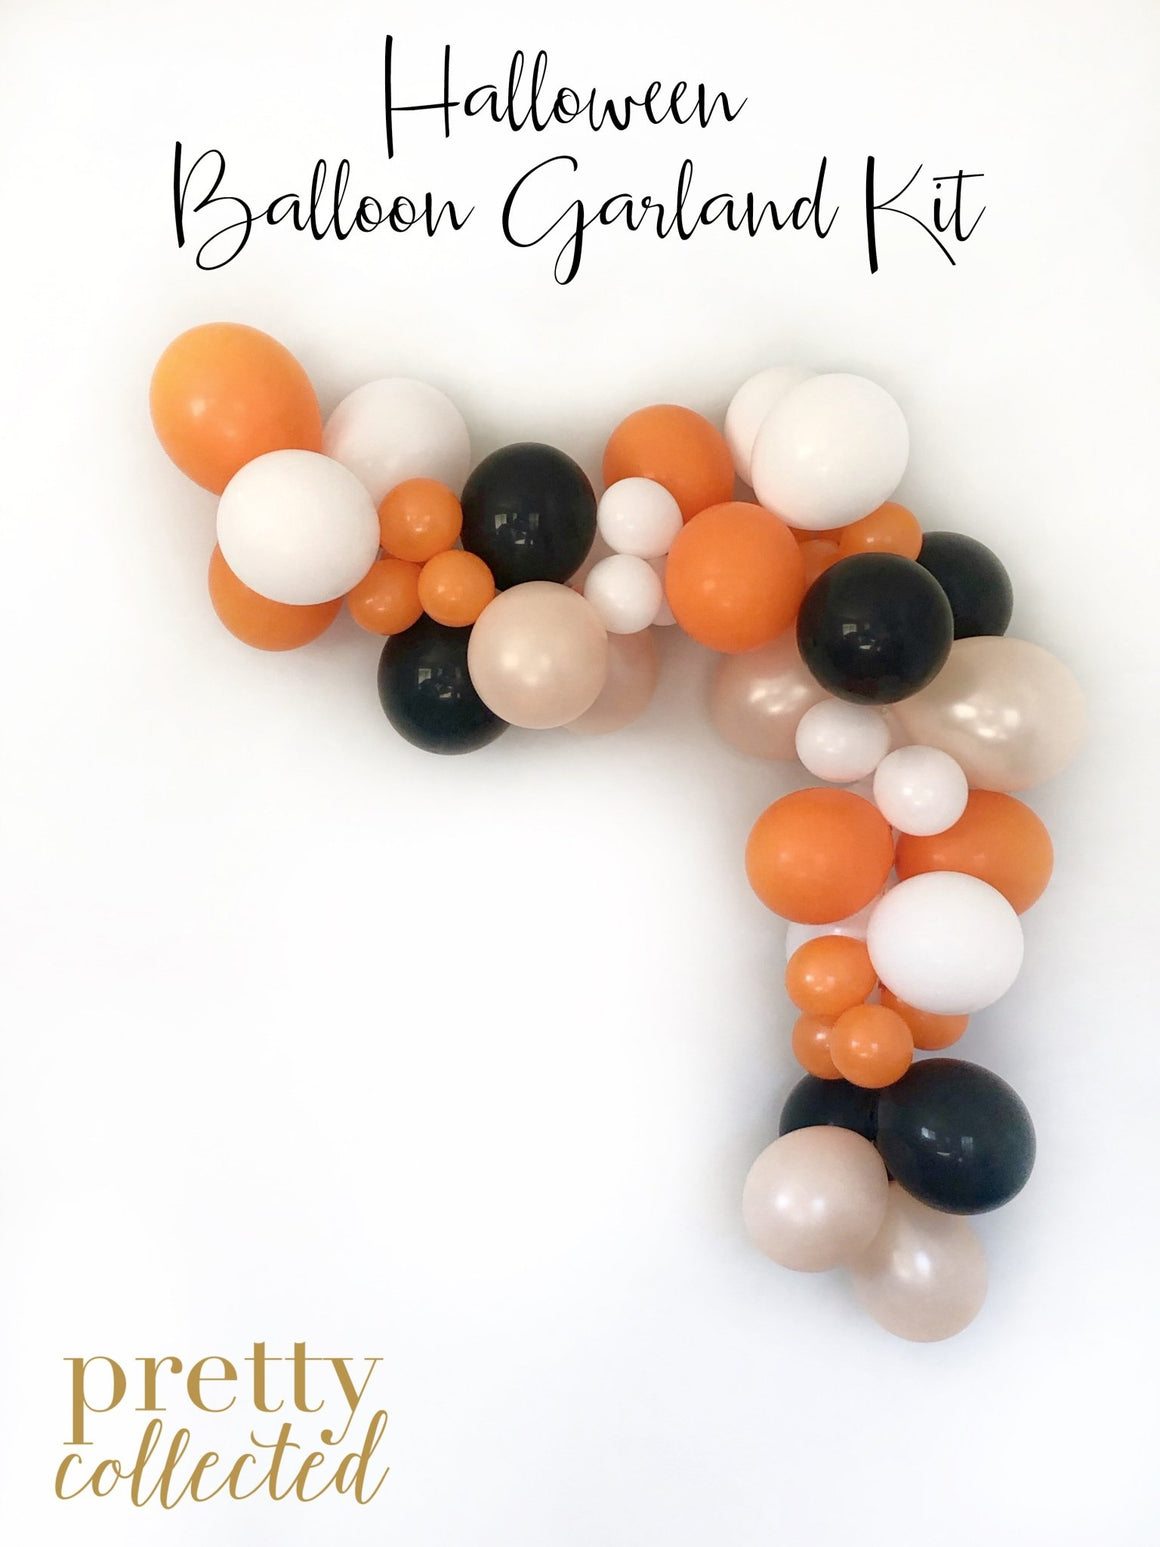 Halloween Balloon Garland Kit - Pretty Collected